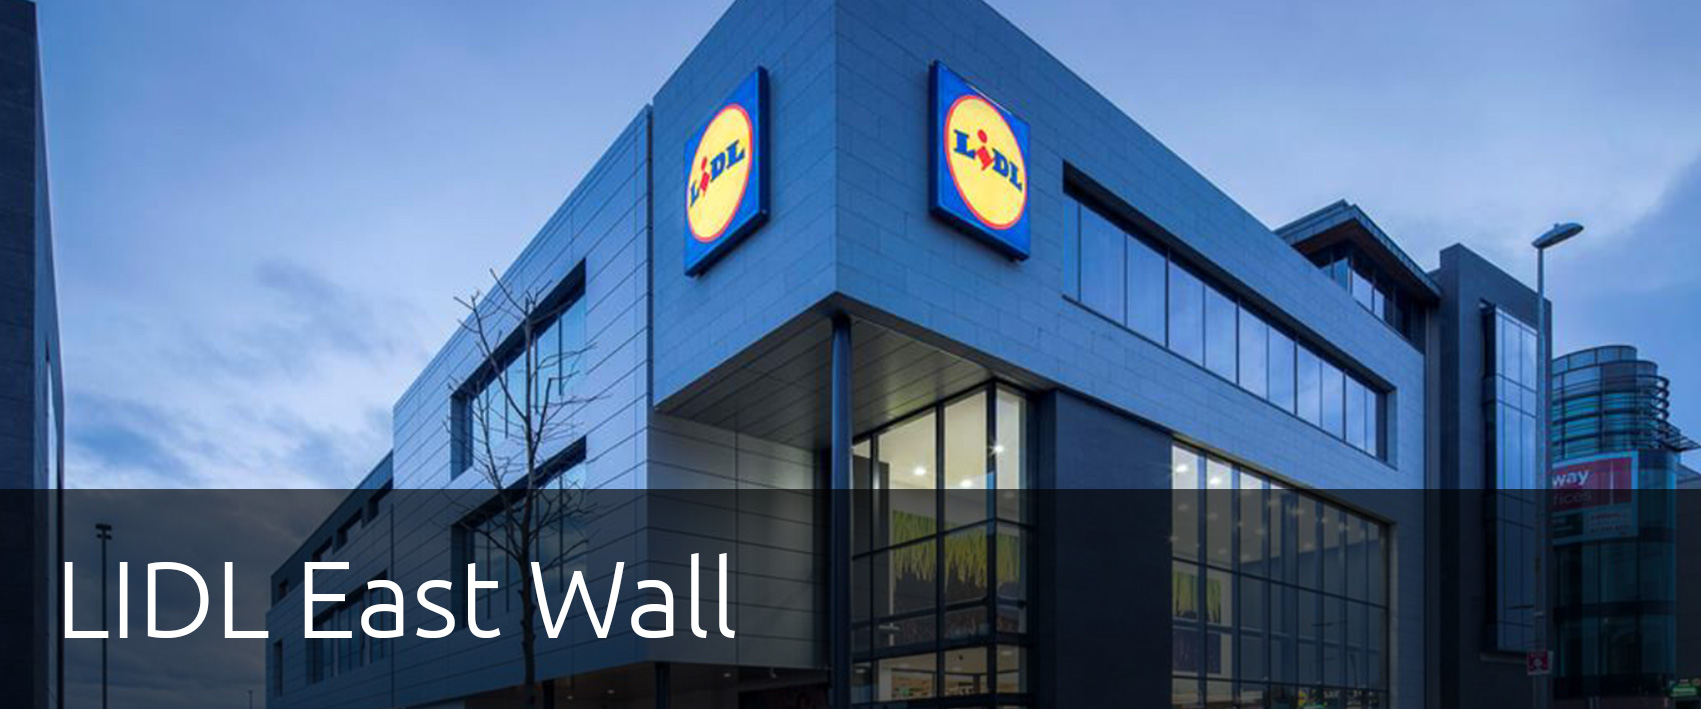 Lidl East Wall by Mannings